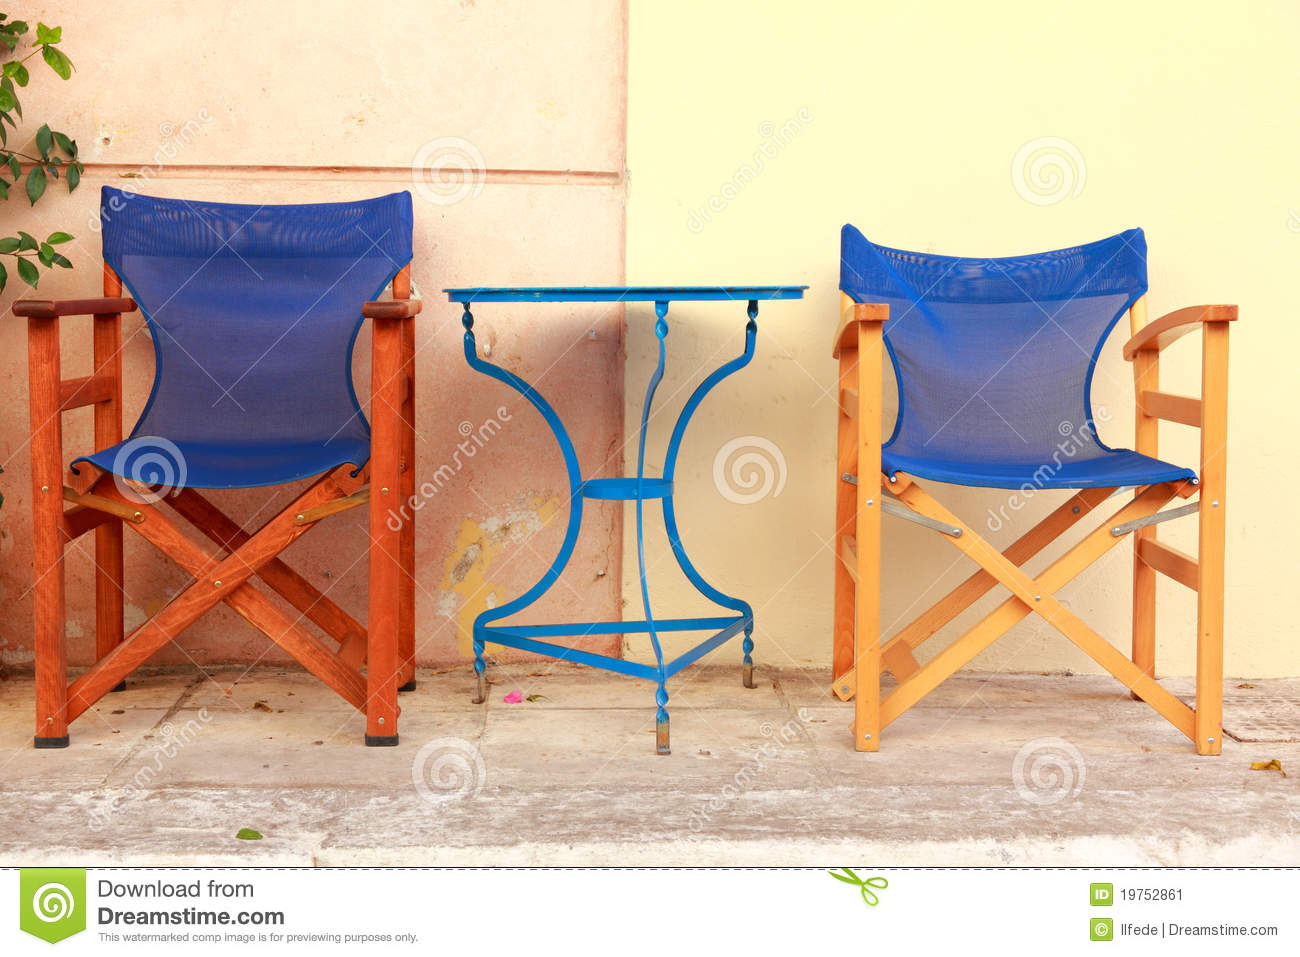 Outdoor cafe blue chairs and tables in athens street greece